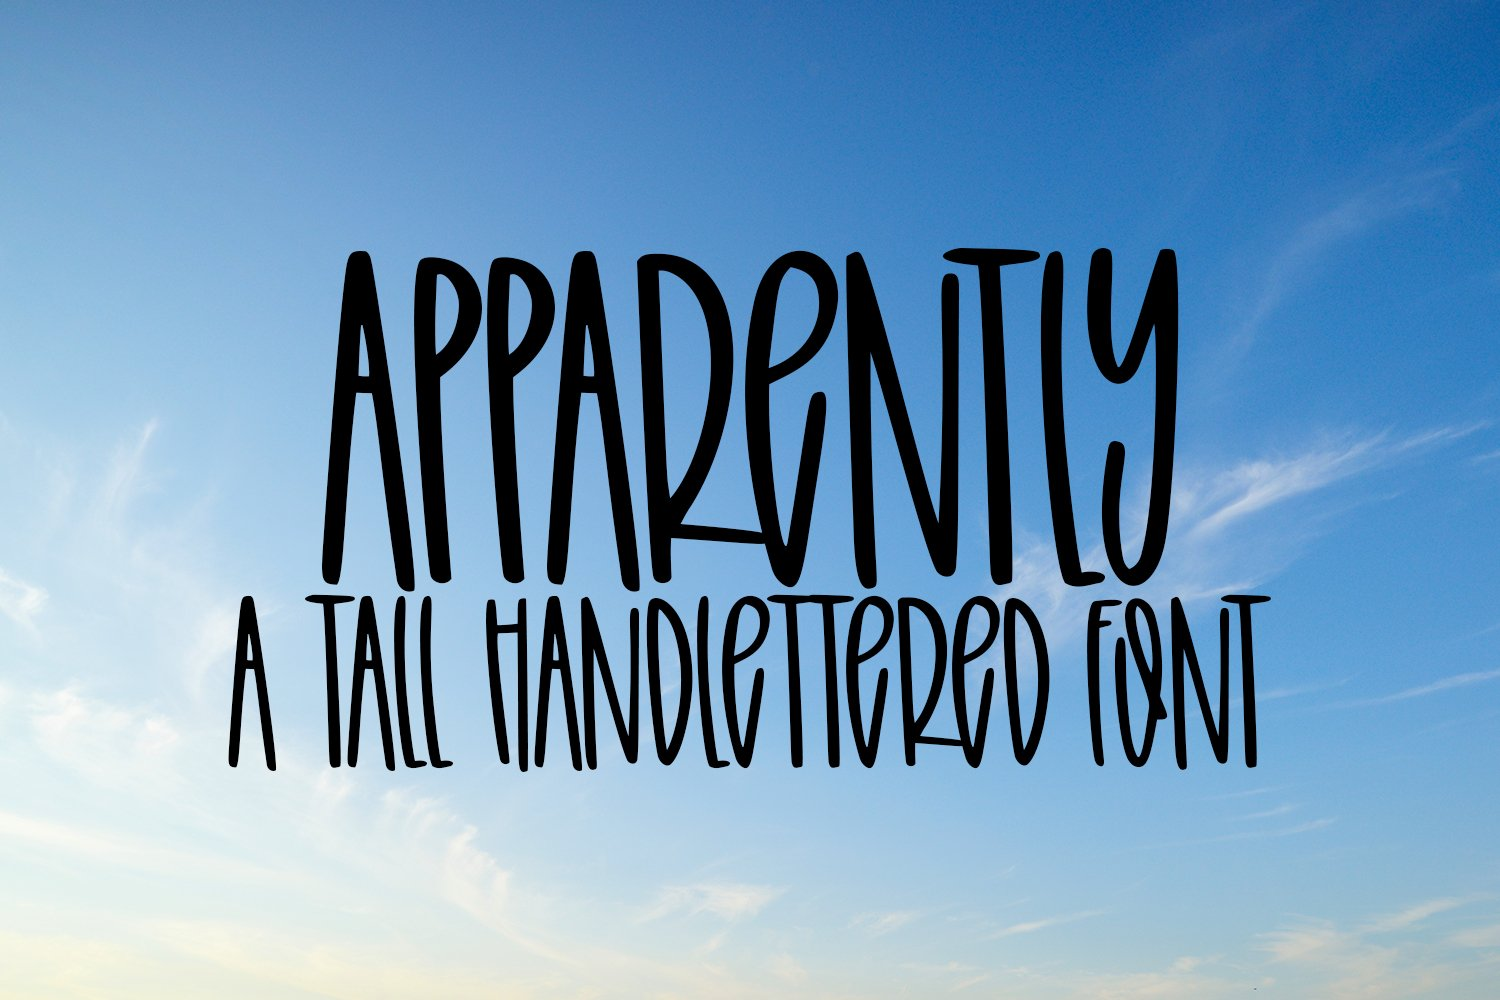 Apparently - A Tall Hand-Lettered Font example image 1